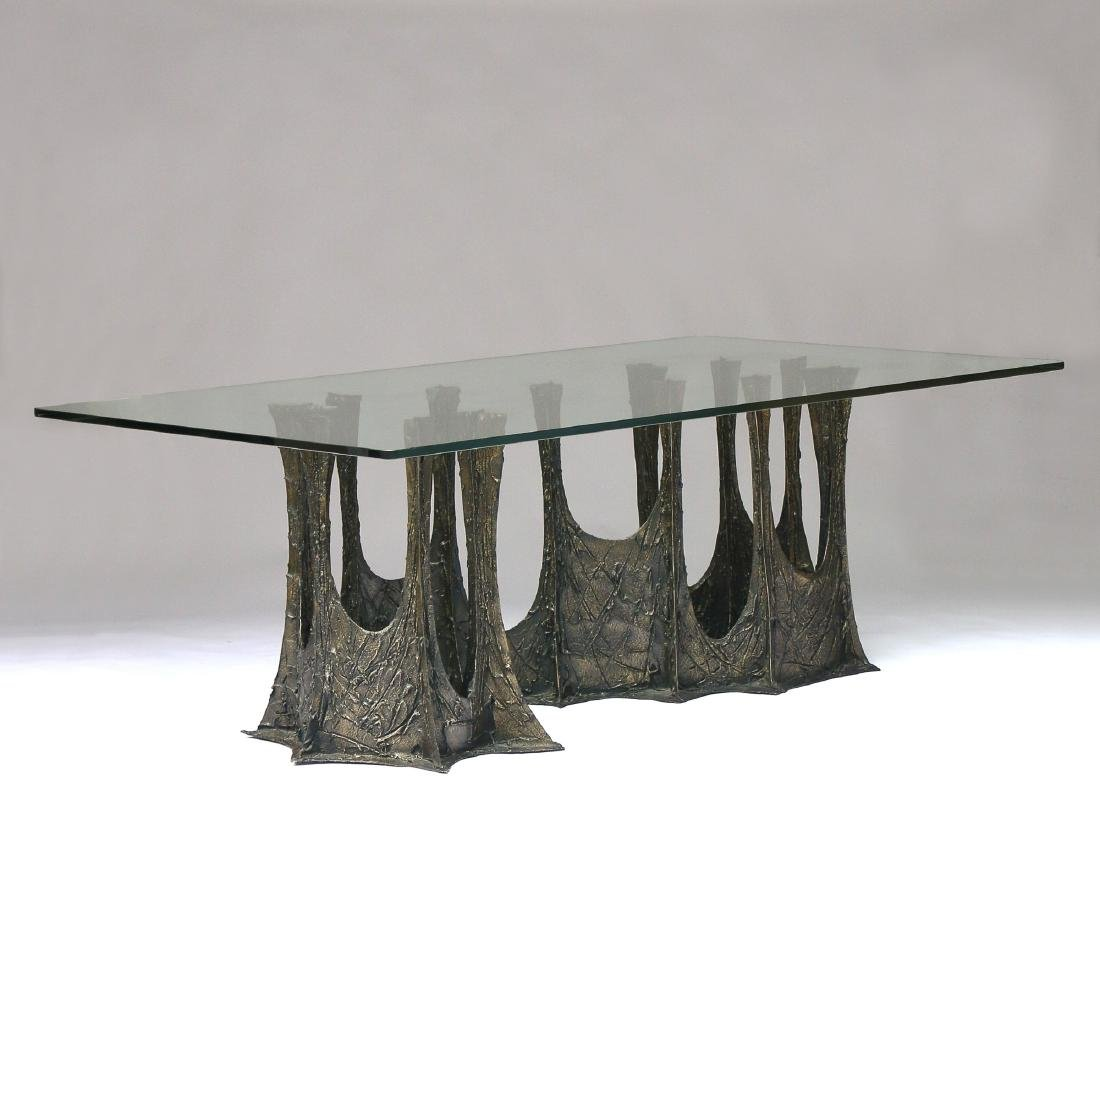 PAUL EVANS SCULPTURED METAL DINING TABLE